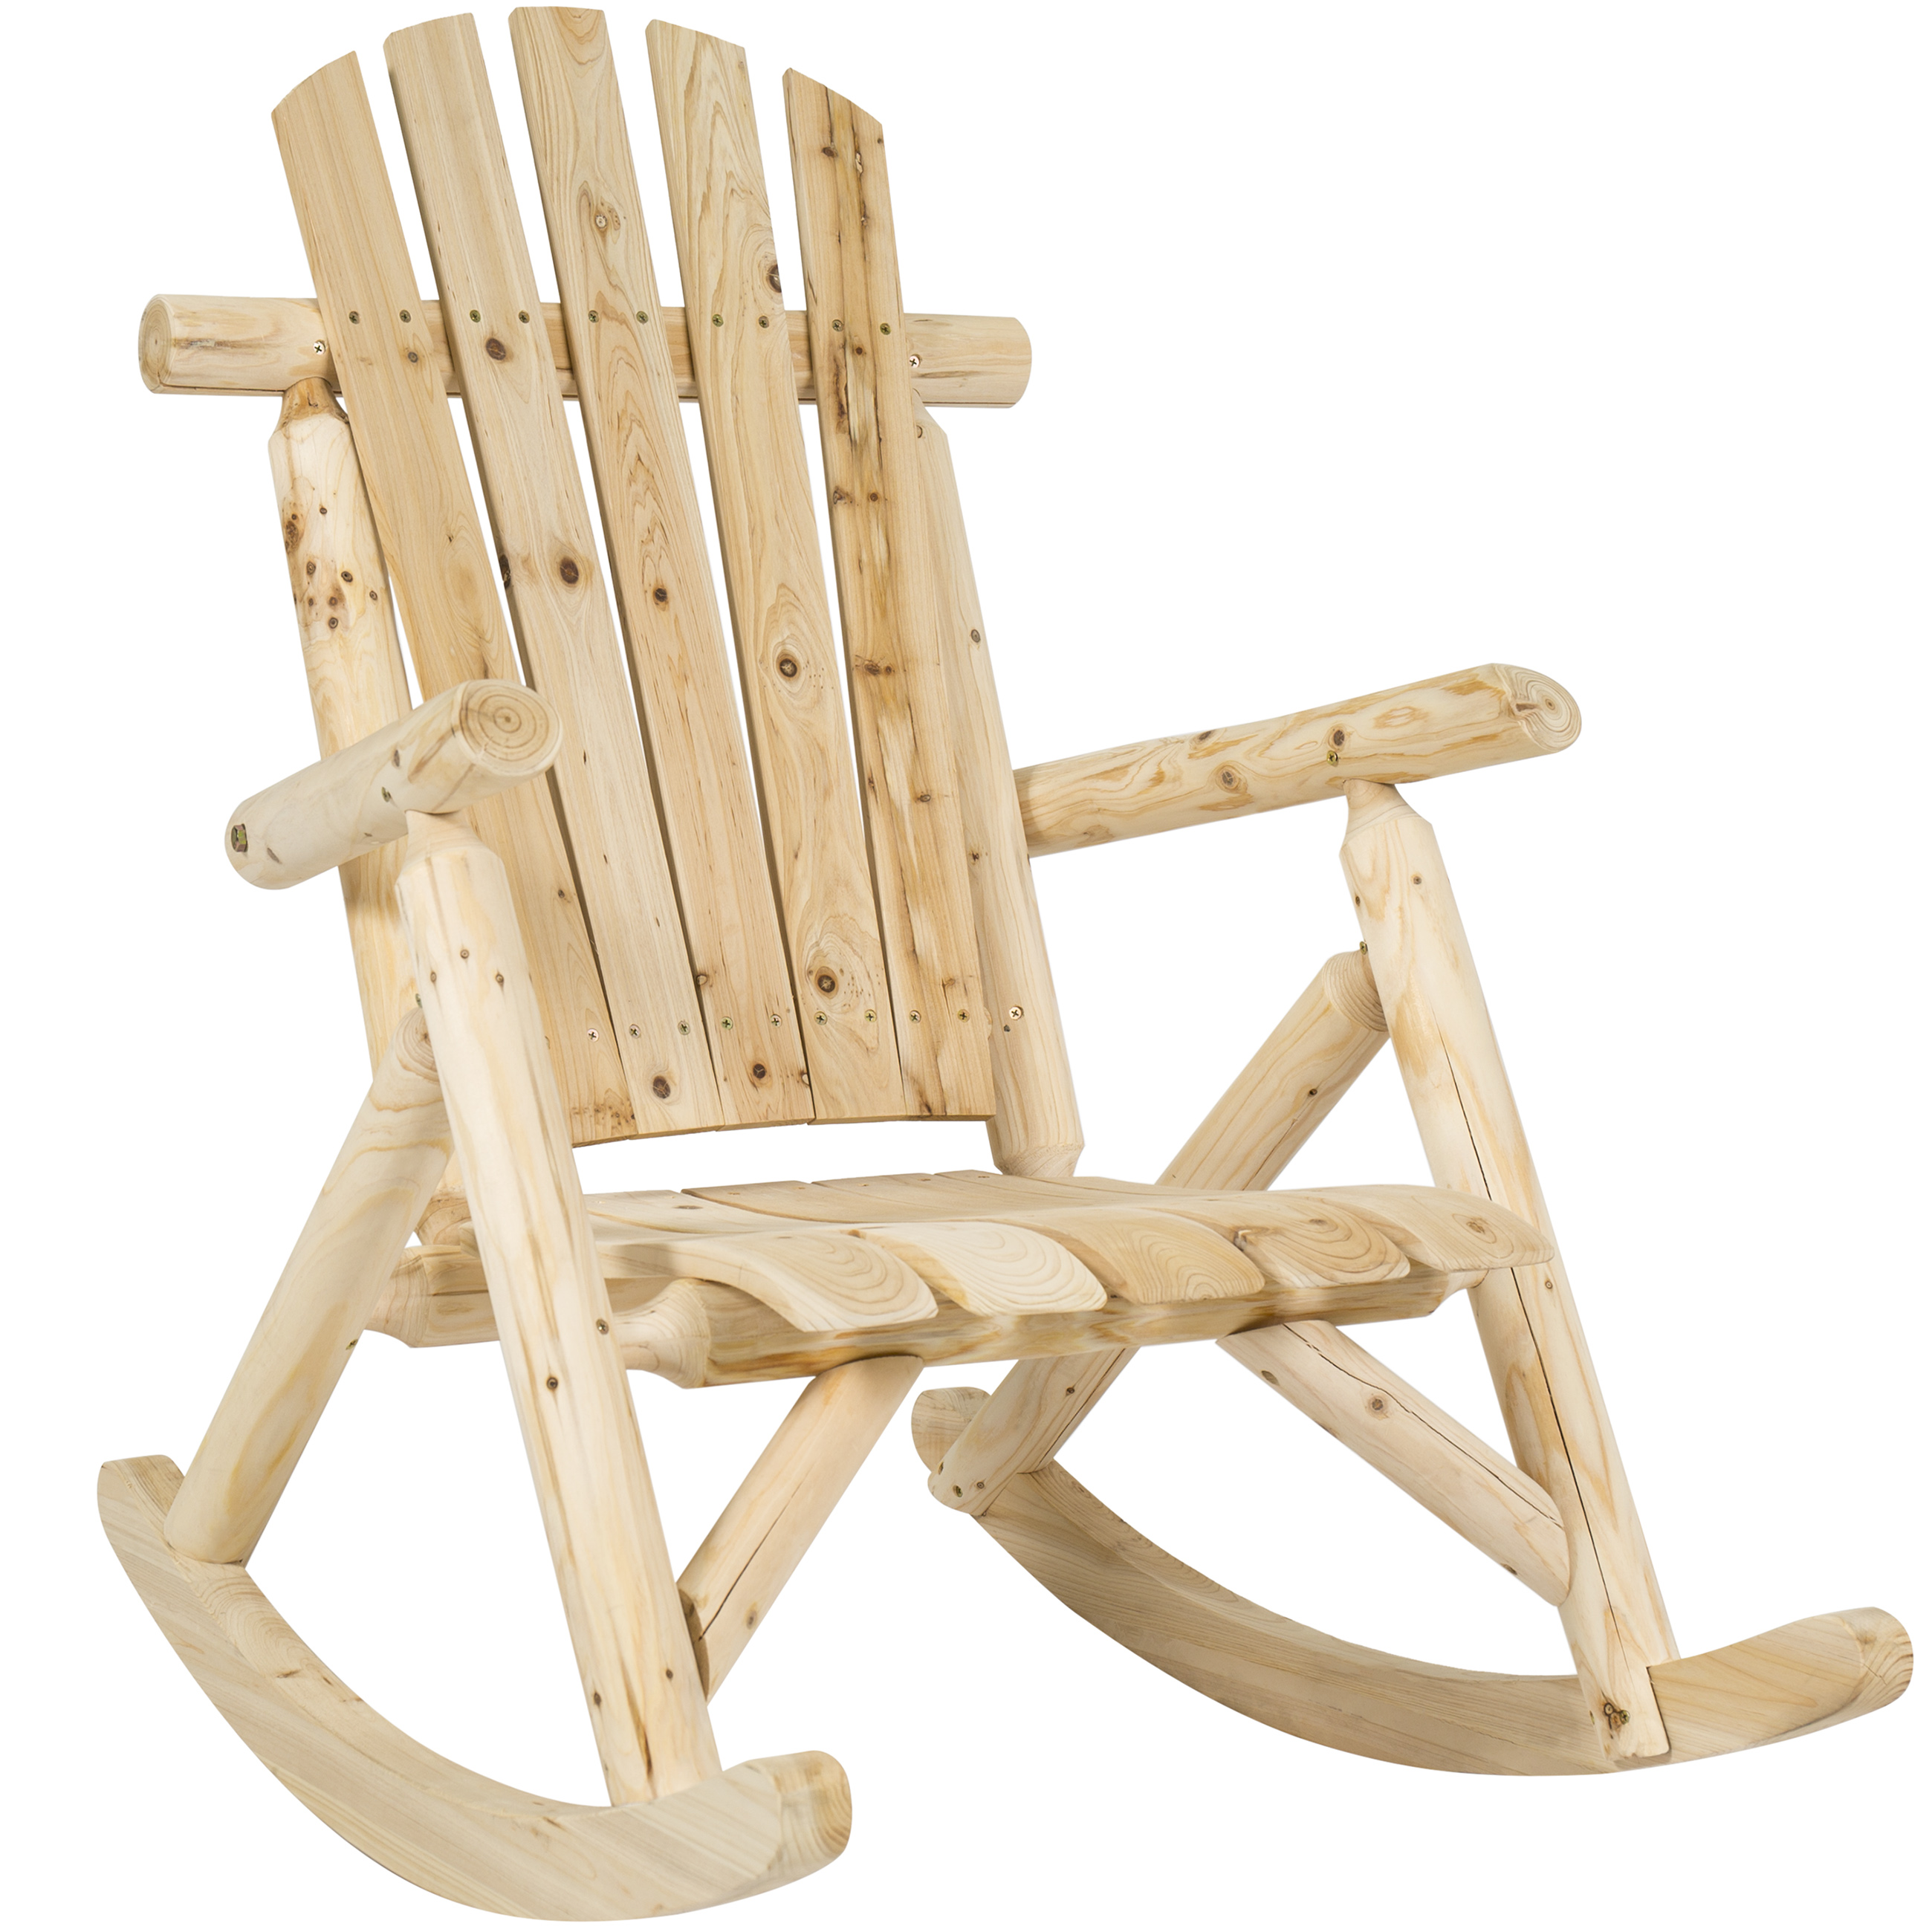 Best Choice Products Wood Log Rocking Chair Single Rocker Natural by Best Choice Products